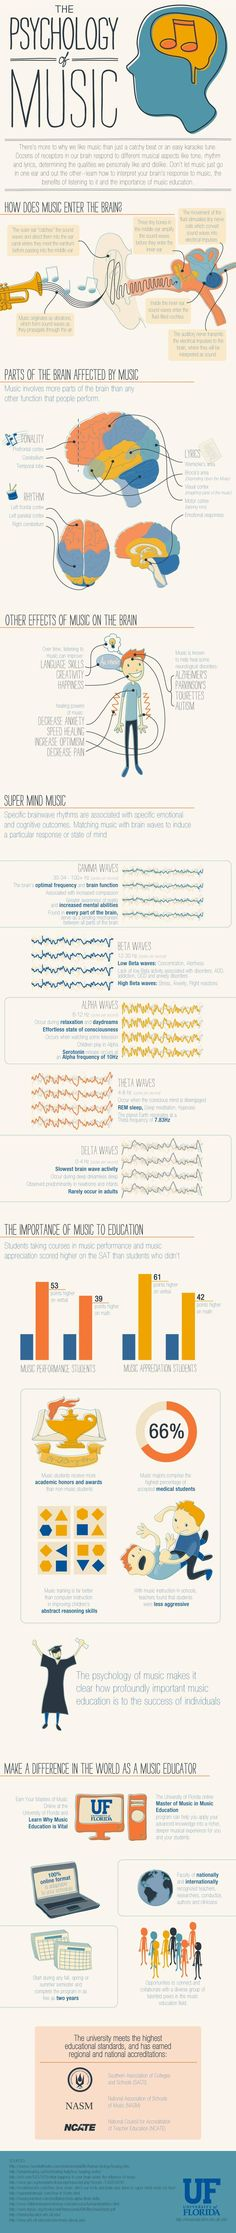 Τhe Psychology of Music Infographic - There's more to why we like music than…